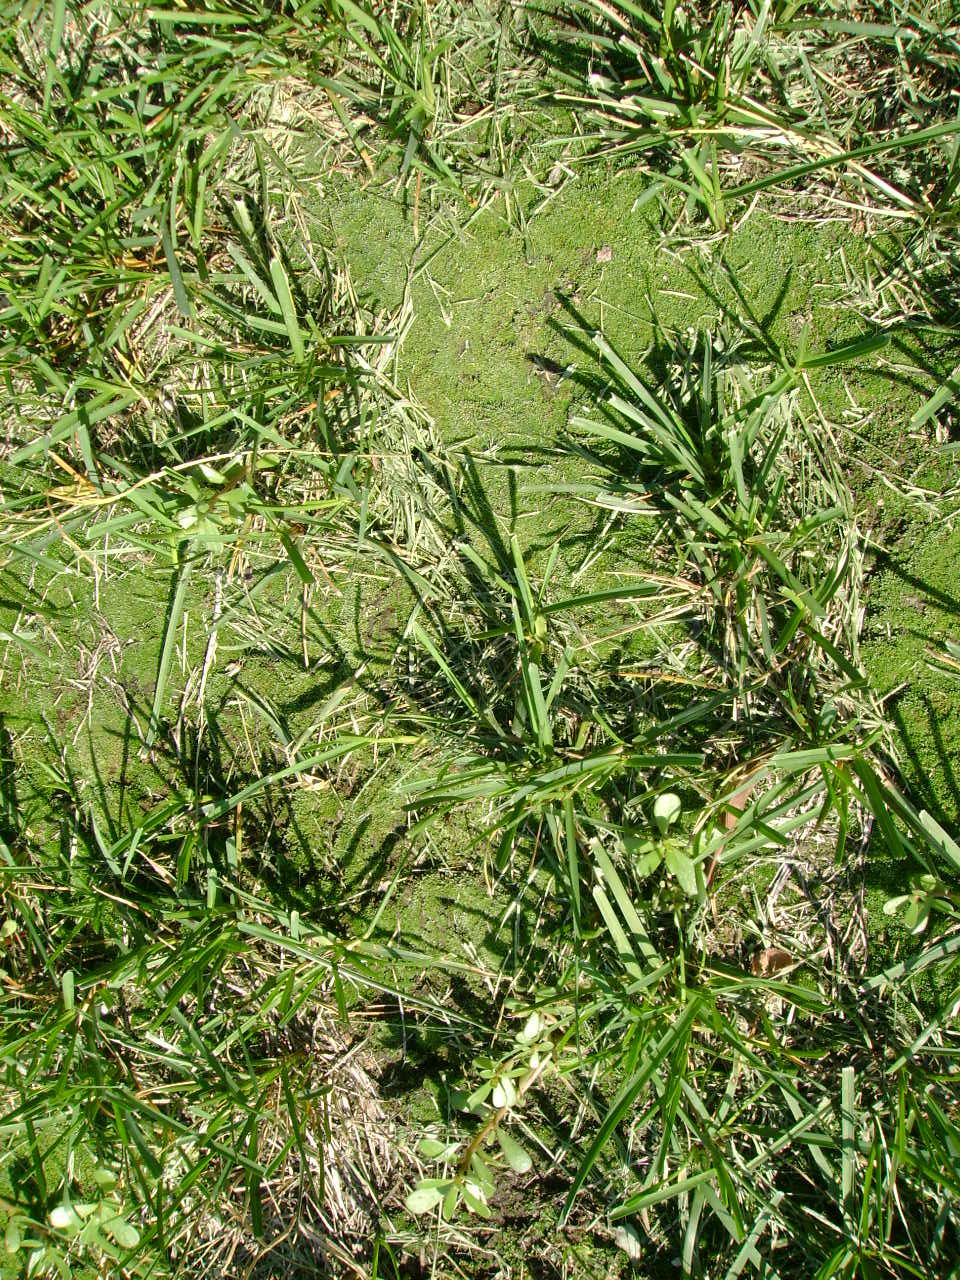 How To Get Rid Of Moss In Grass Naturally